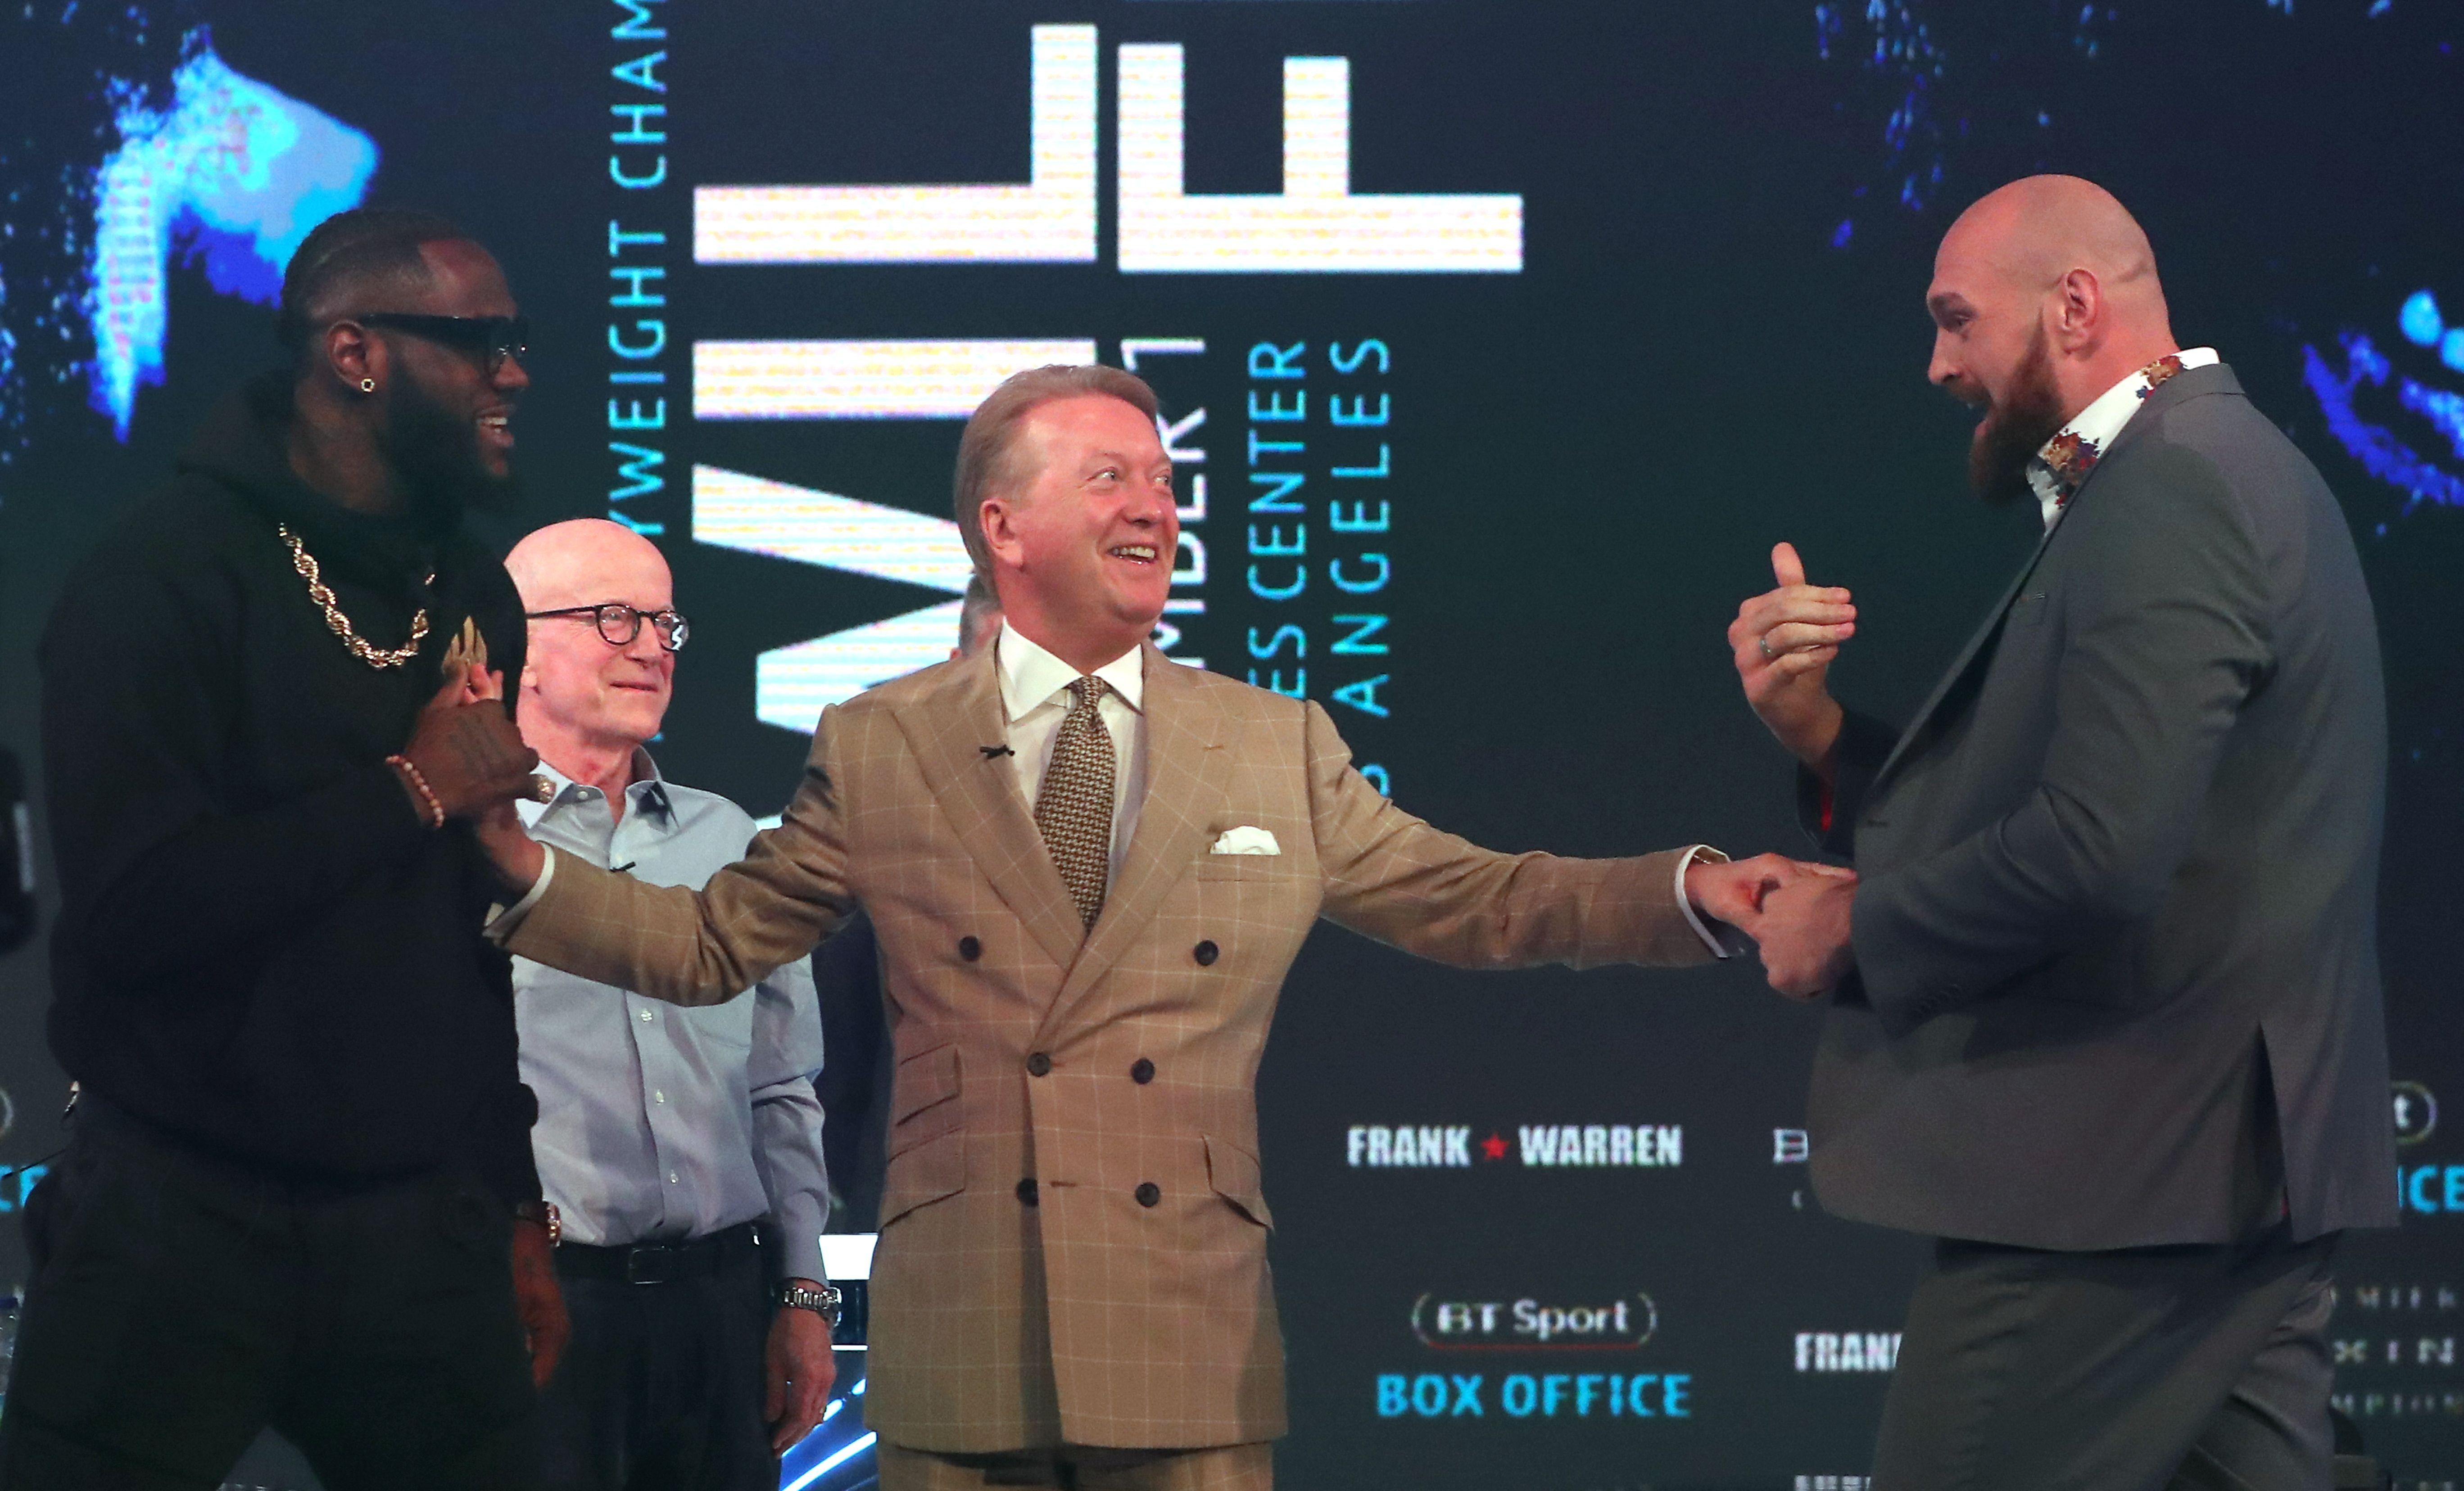 WBC world heavyweight champion, US boxer Deontay Wilder, and former world heavyweight champion, British boxer Tyson Fury are separated by boxing promoter and manager Frank Warren.